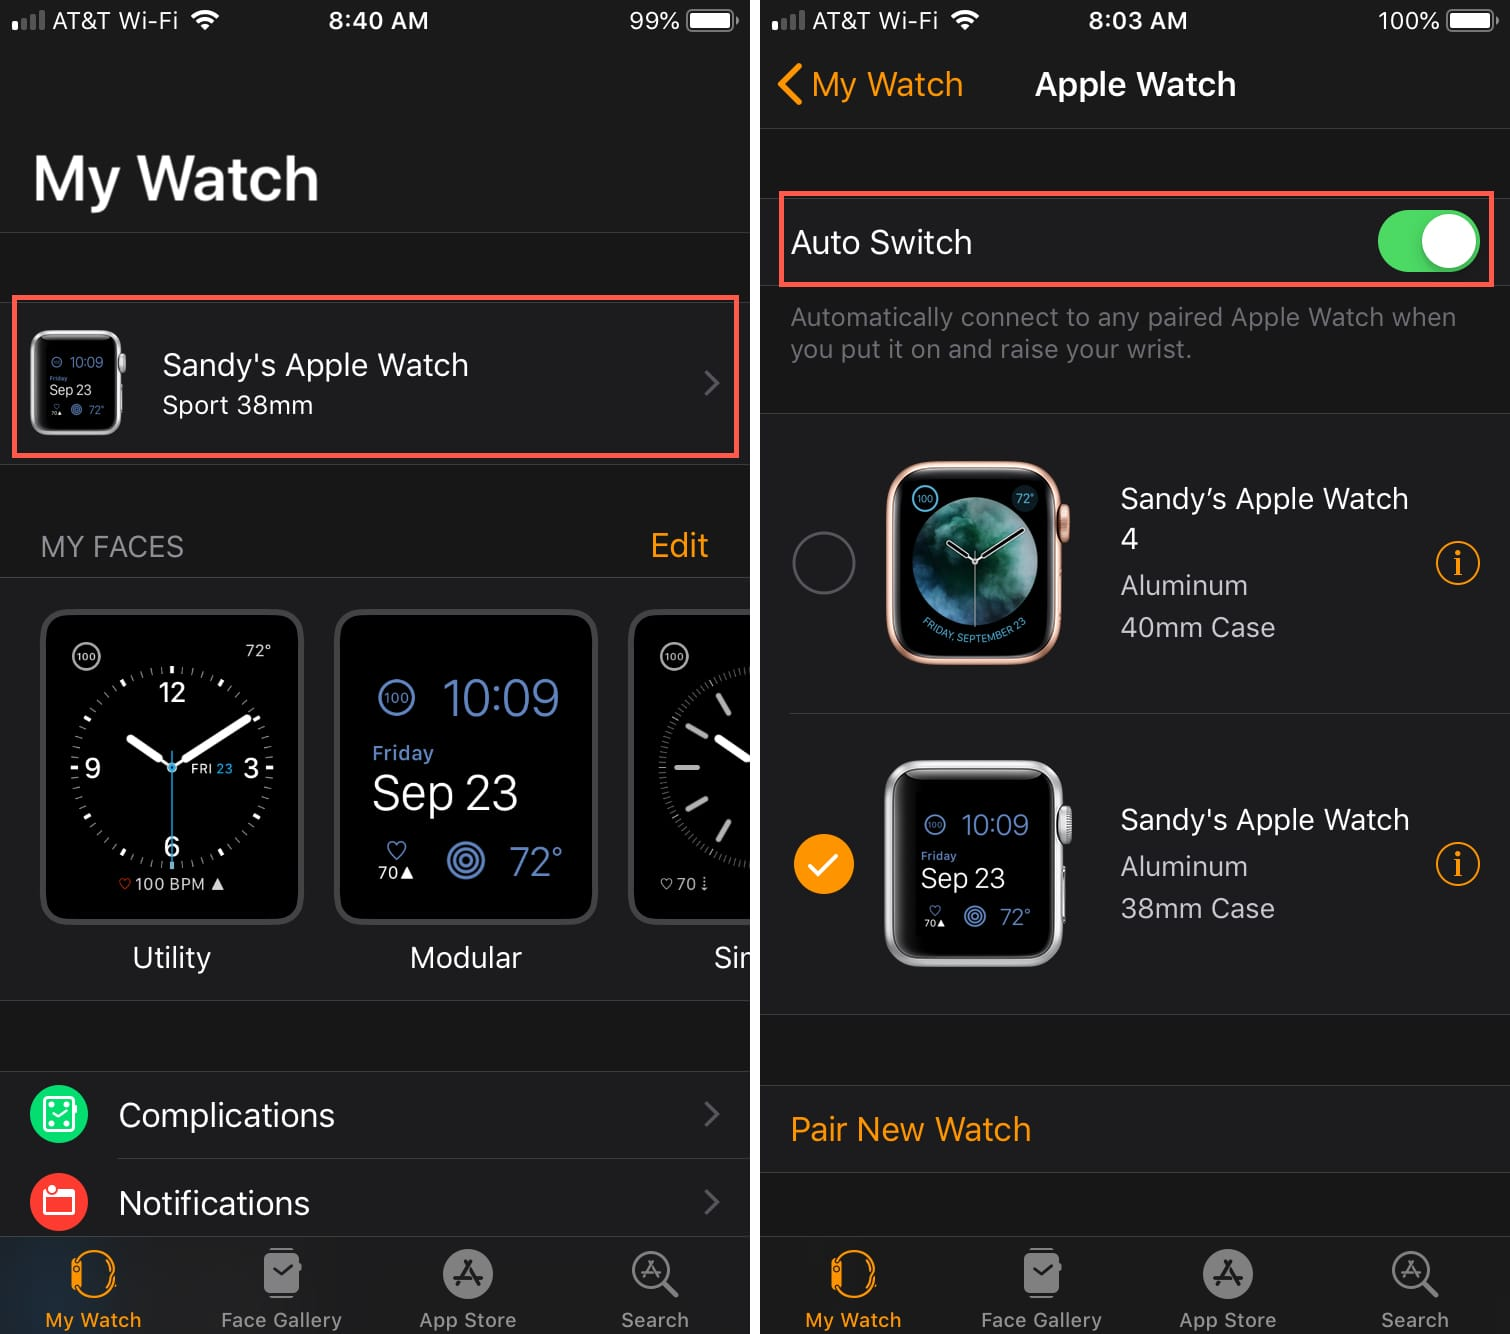 Enable Auto Switch on iPhone for Apple Watch